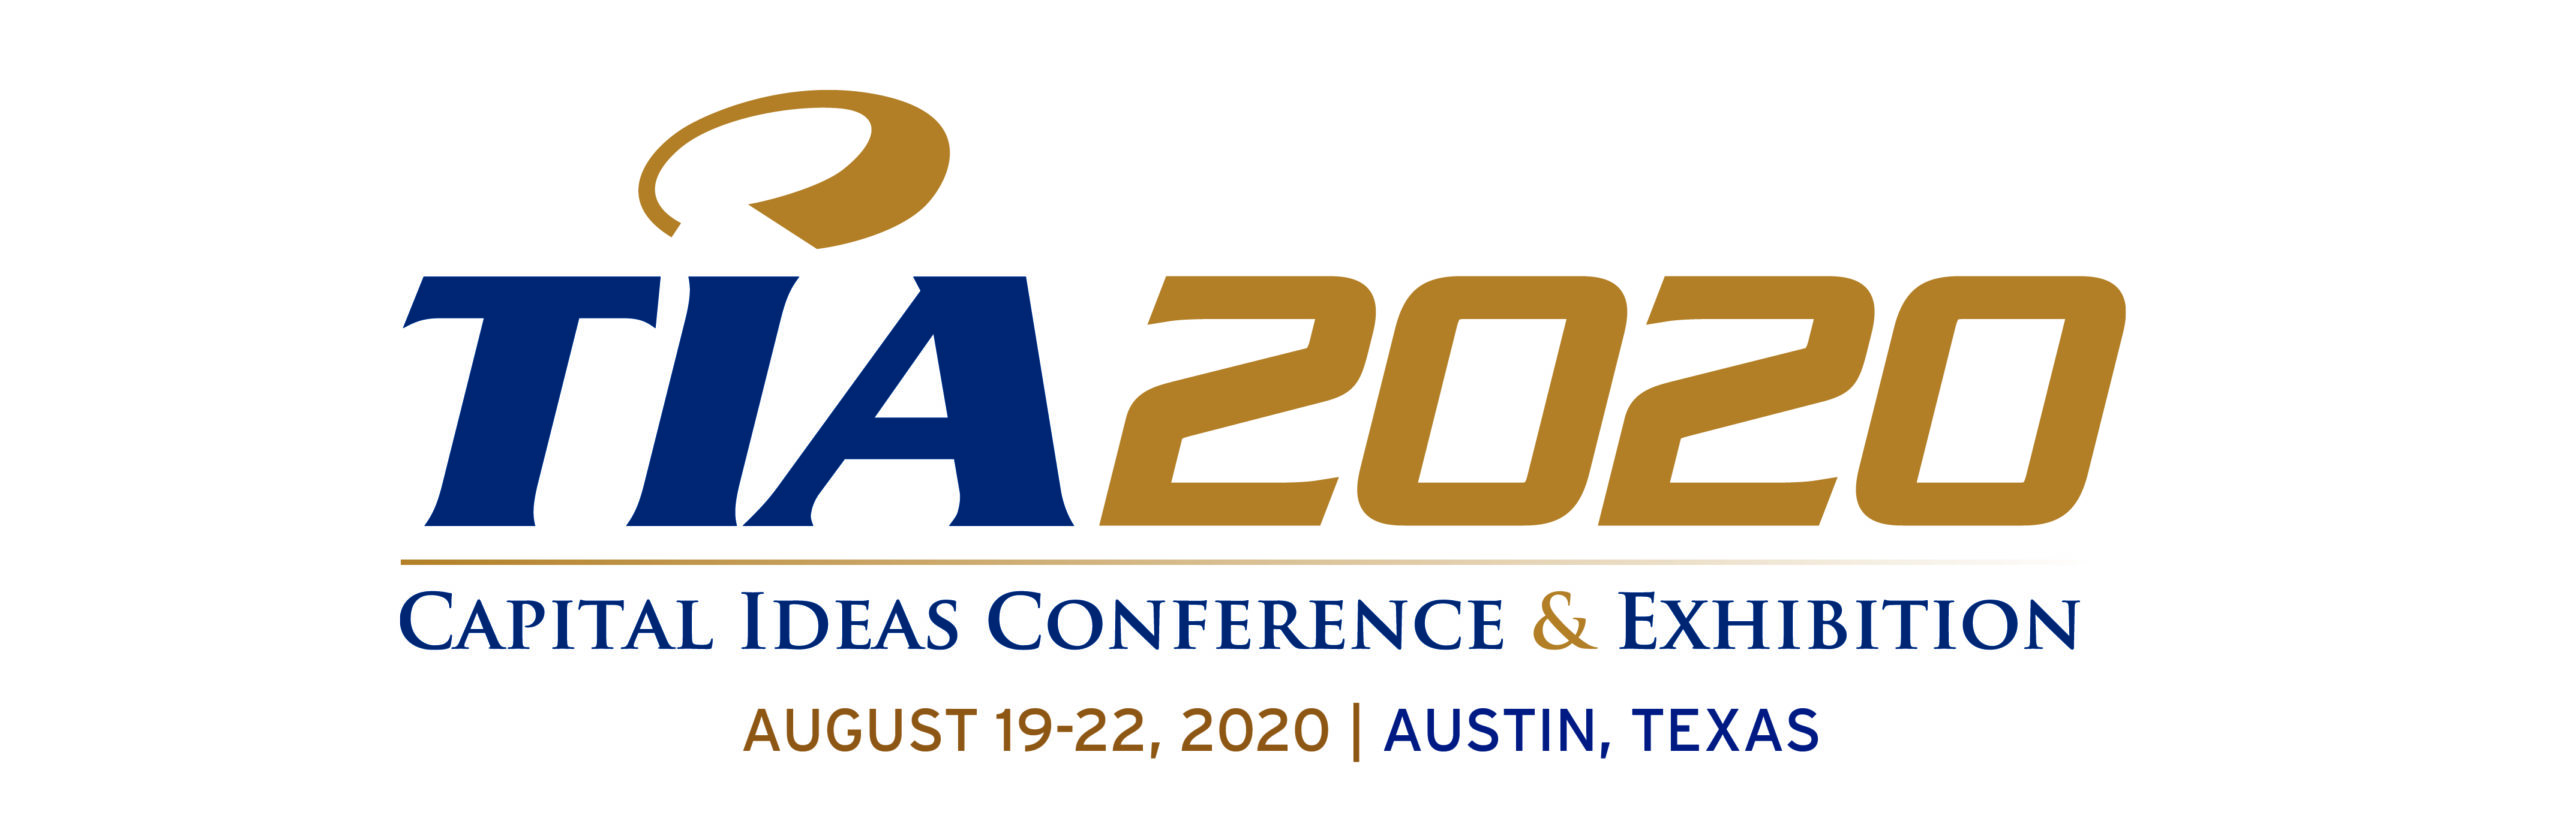 2020 Conference Website Header